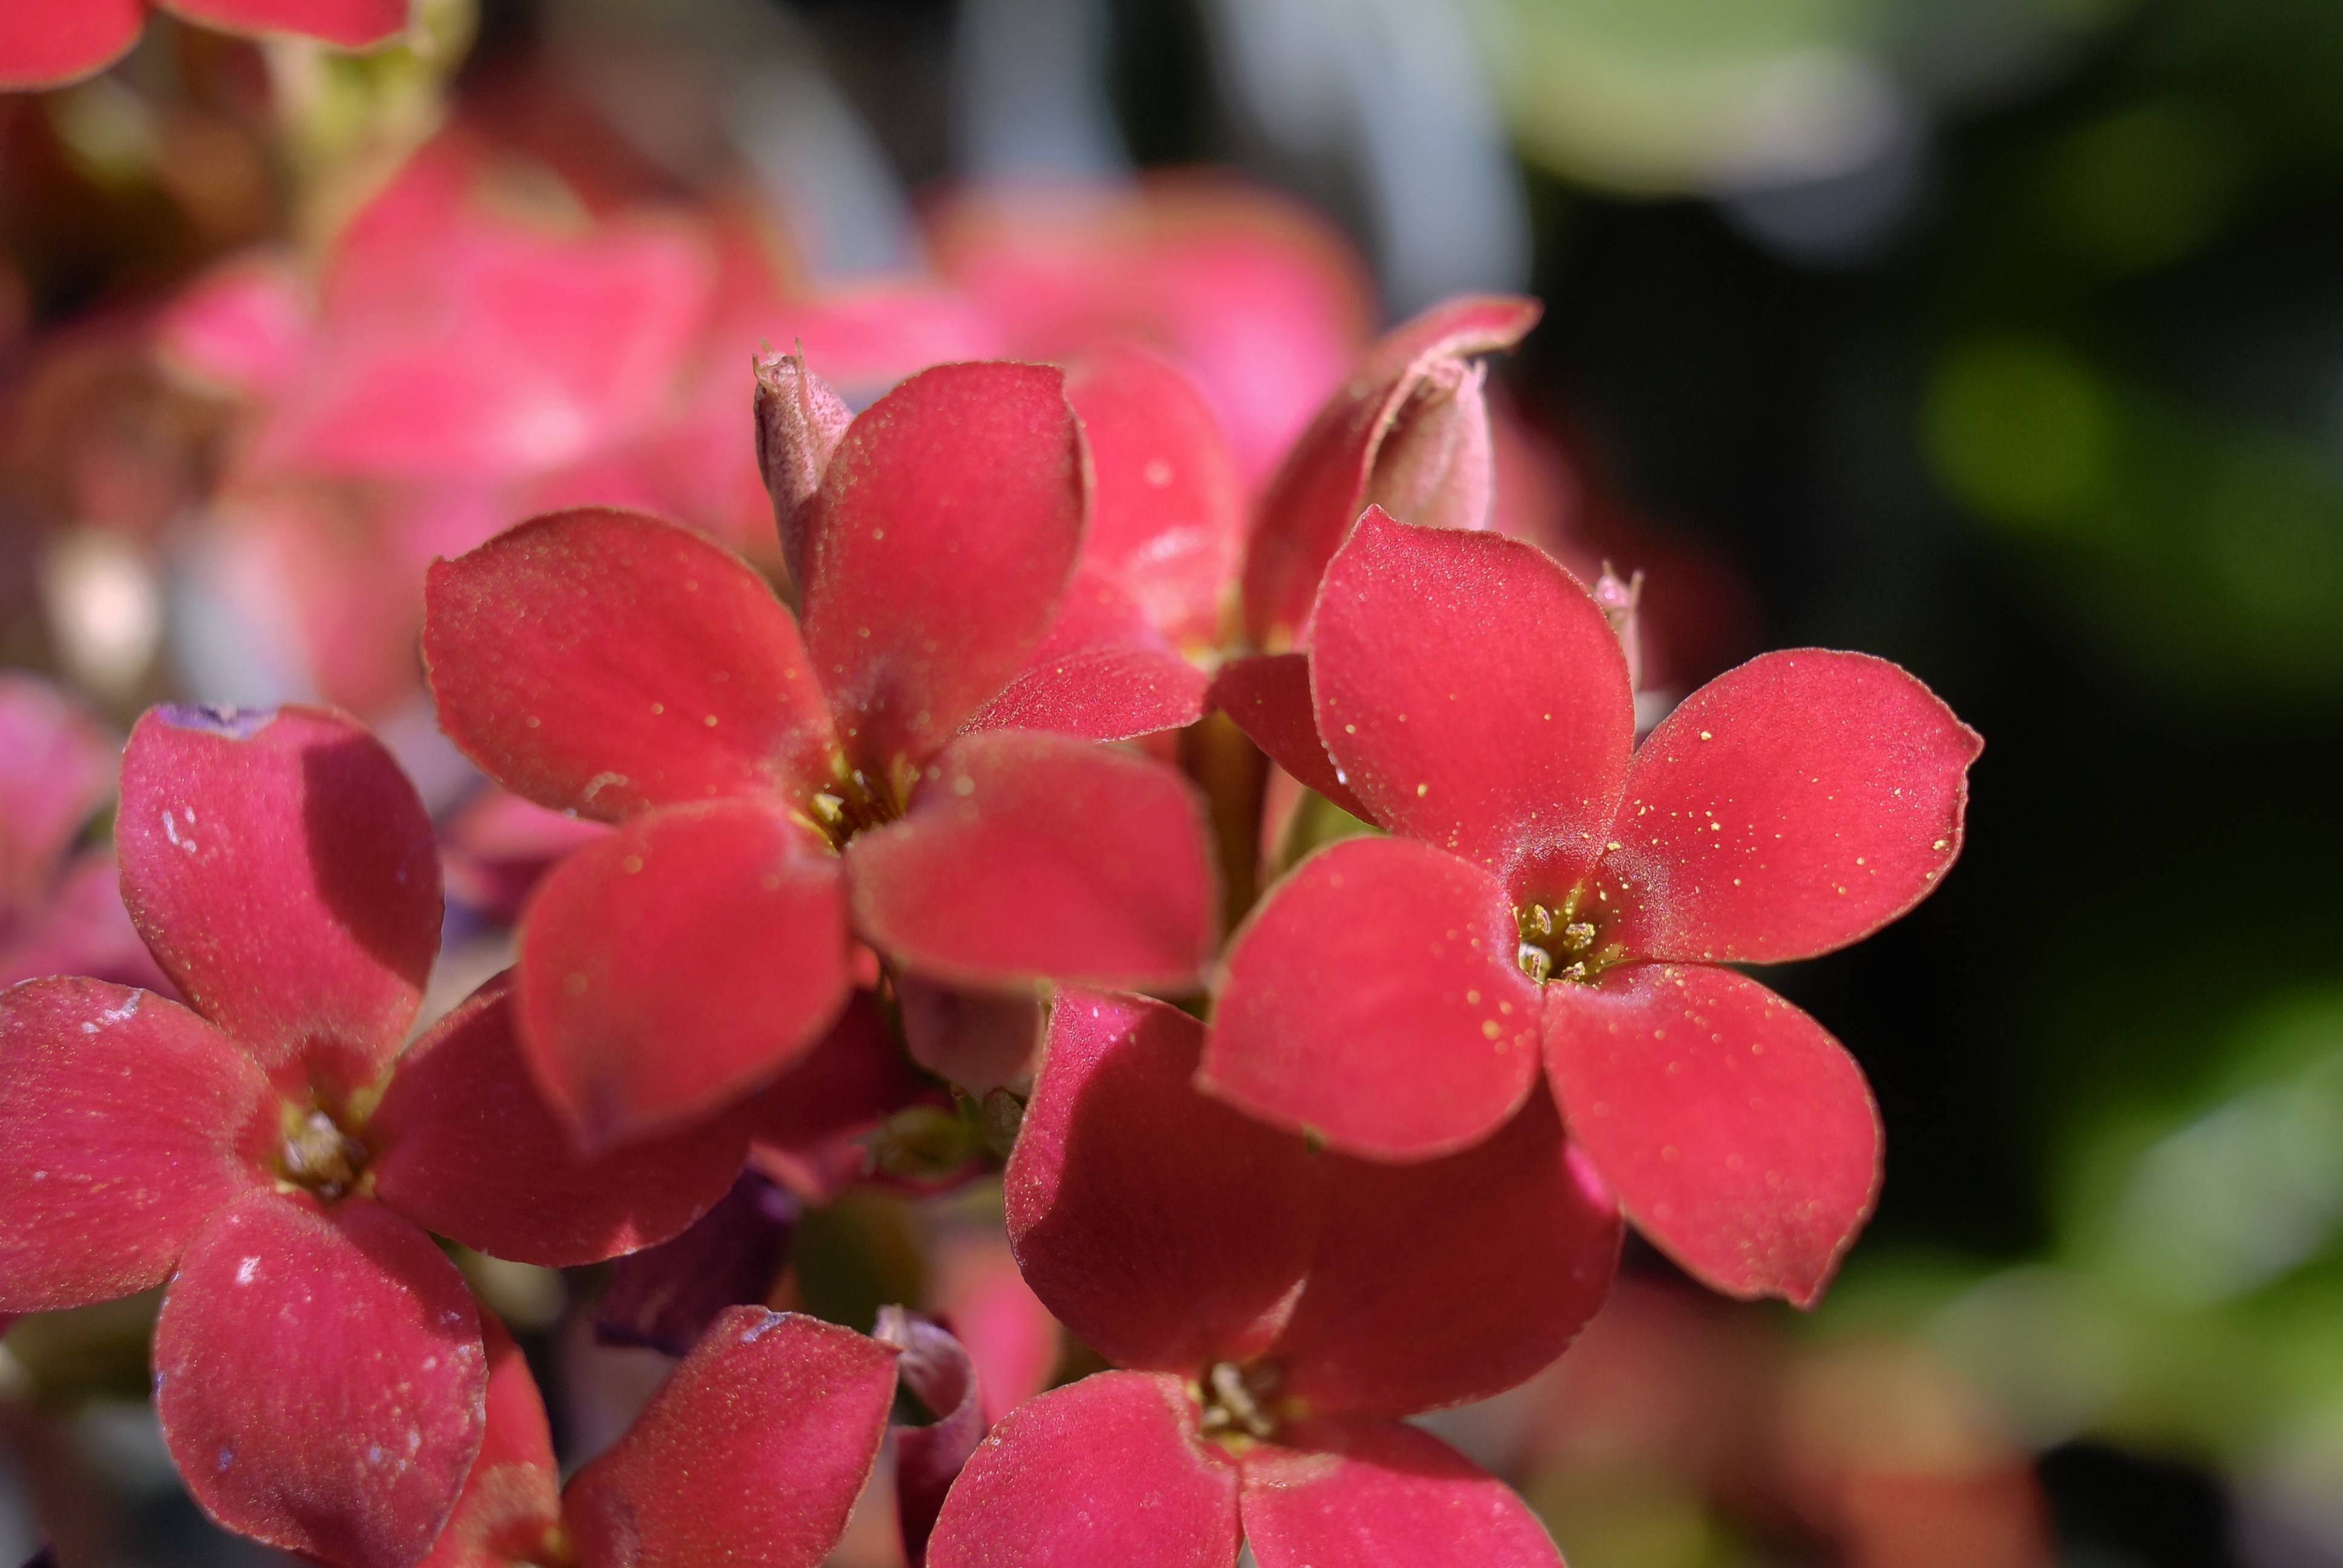 Kalanchoes are flowering plants that come in a range of colors and their blooms coincide with the colder months.